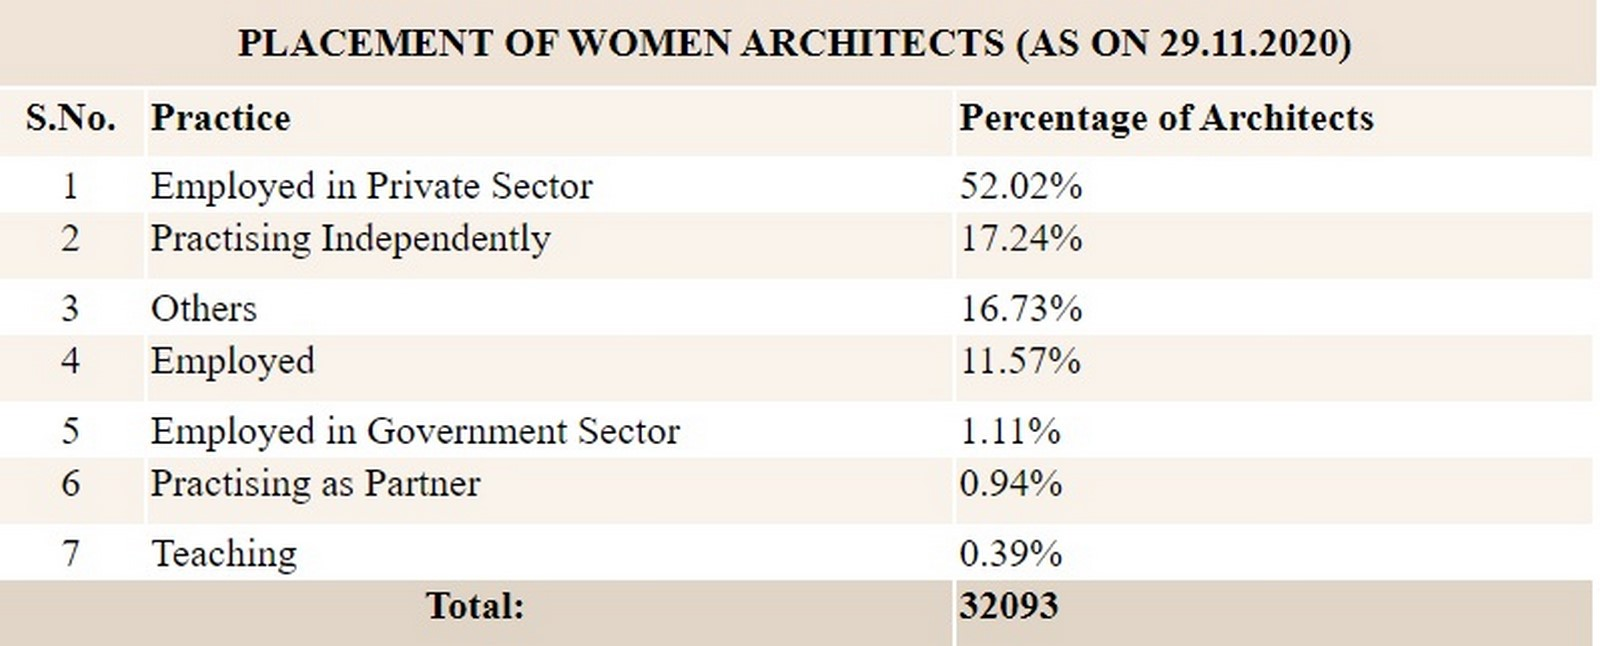 Preferential gender biased treatment in the Architecture community - Sheet4